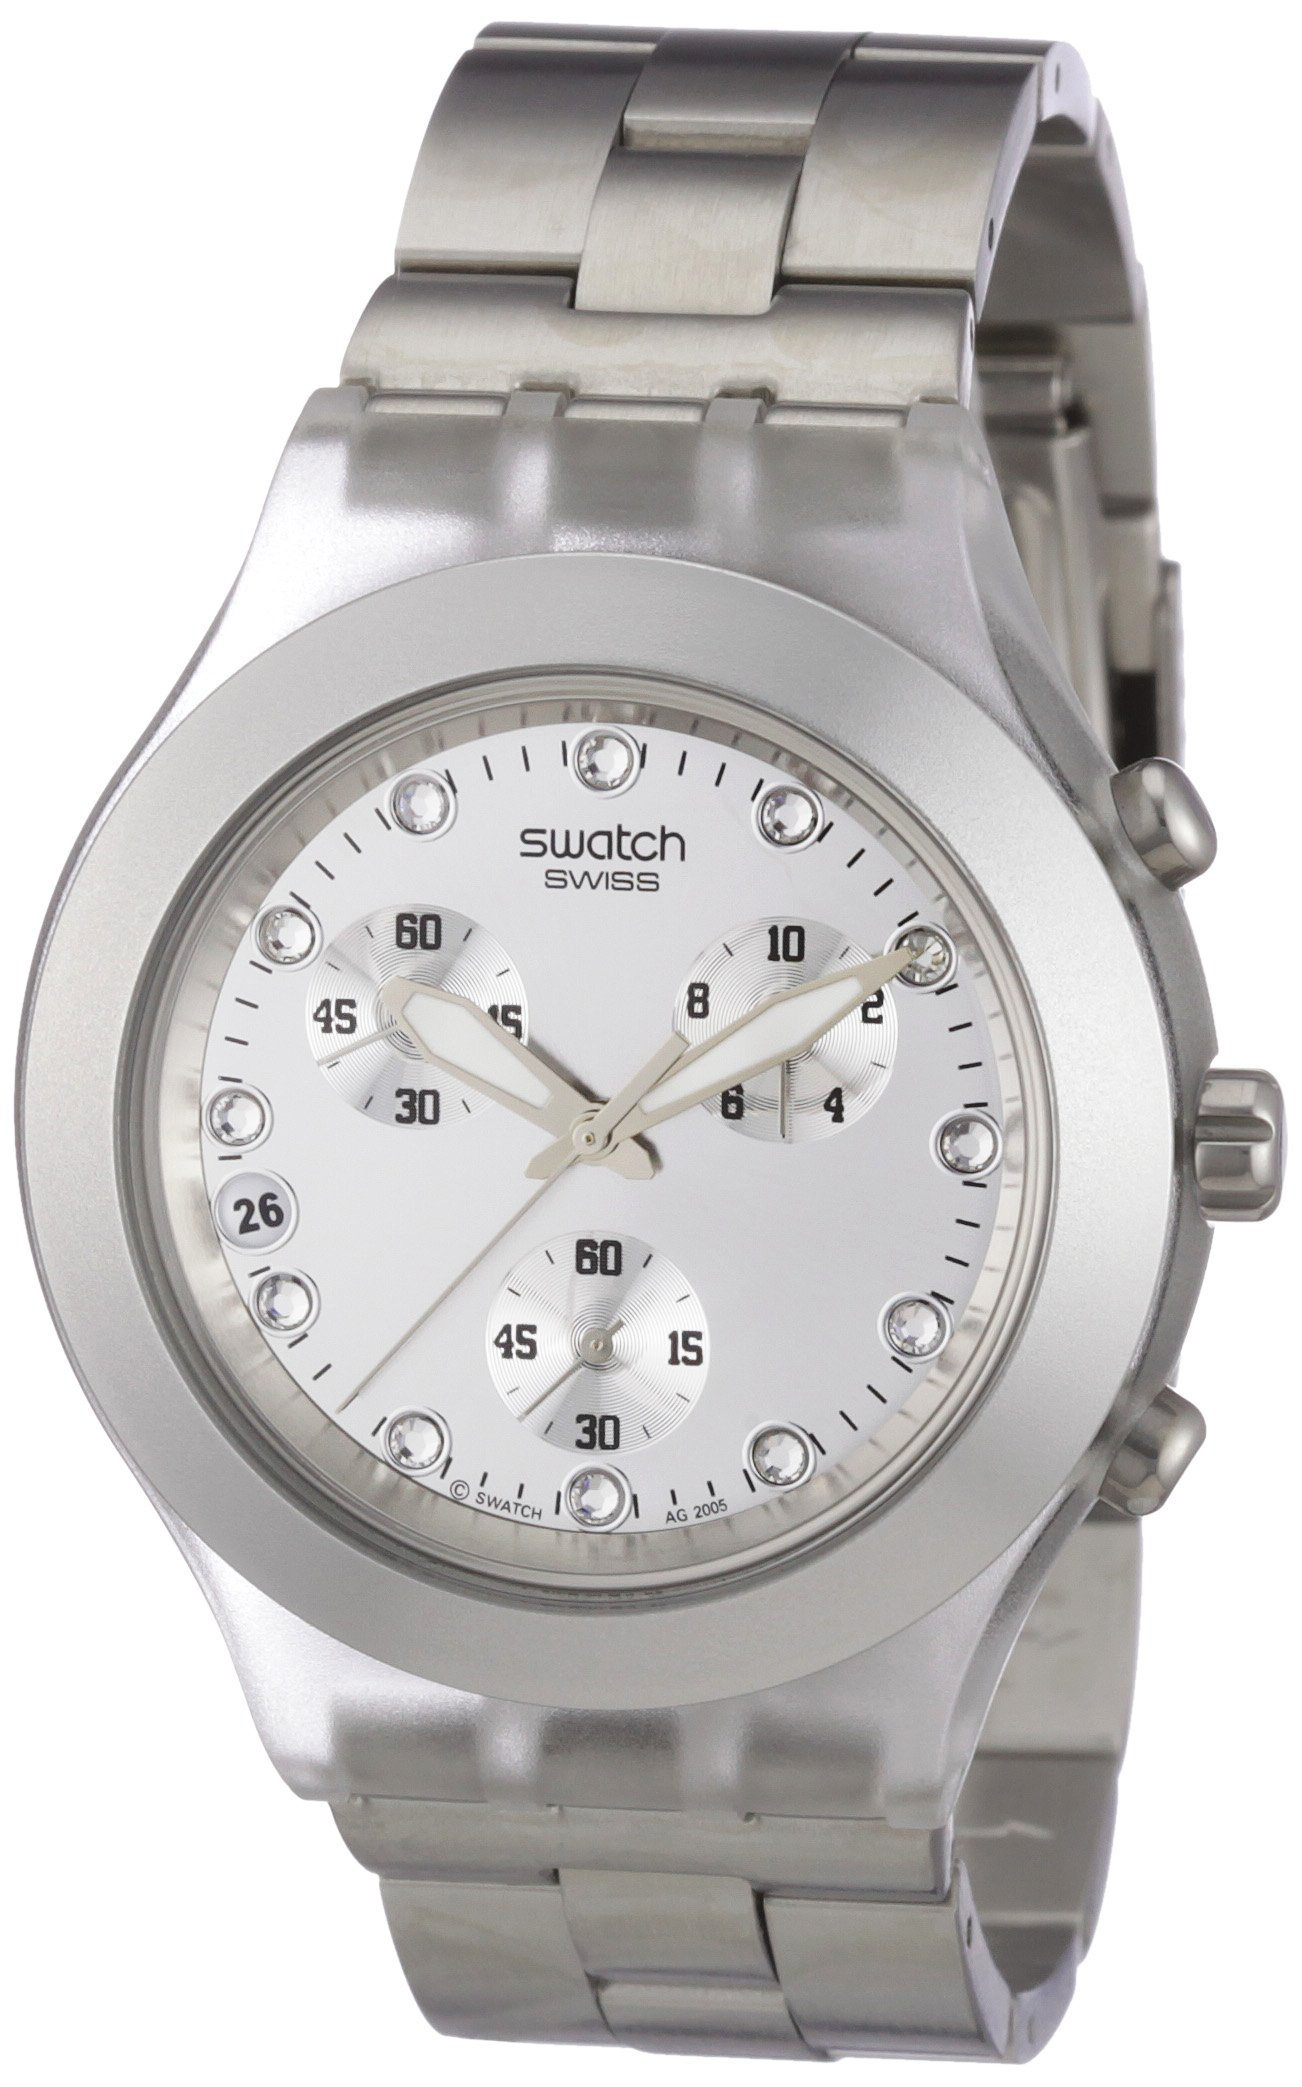 Swatch Diaphane Chronograph Blooded Silver Mens Watch SVCK4038G by Swatch